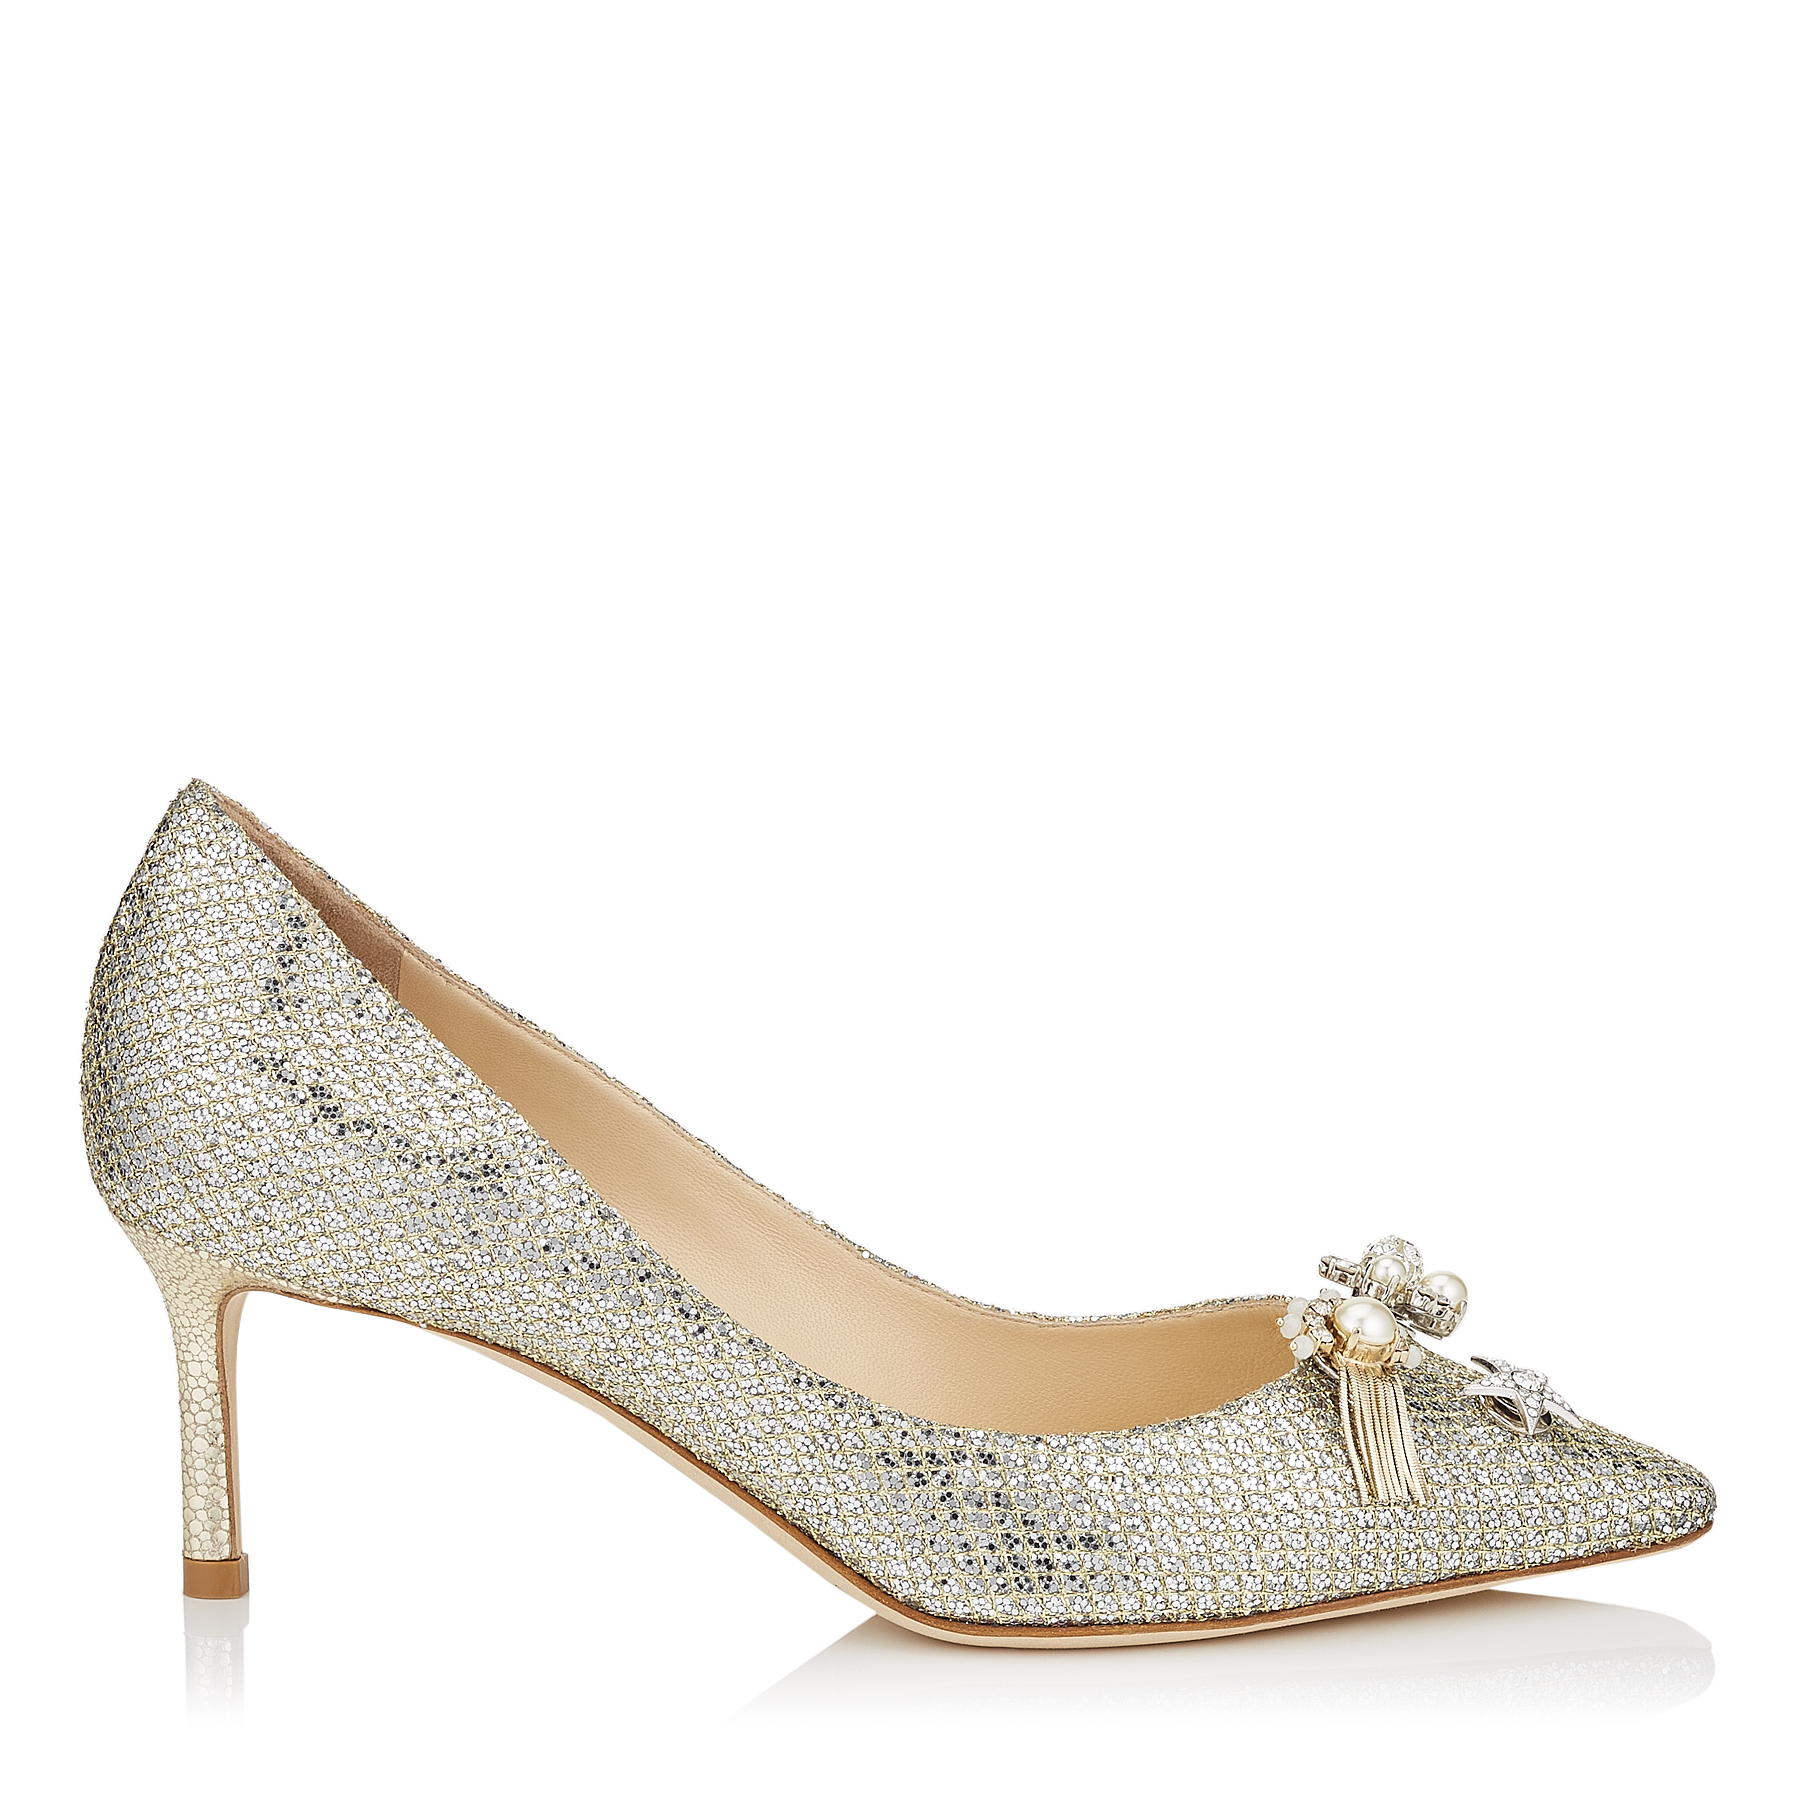 JASMINE 60 Champagne Glitter Fabric Pointy Toe Pumps with Jewelled Buttons